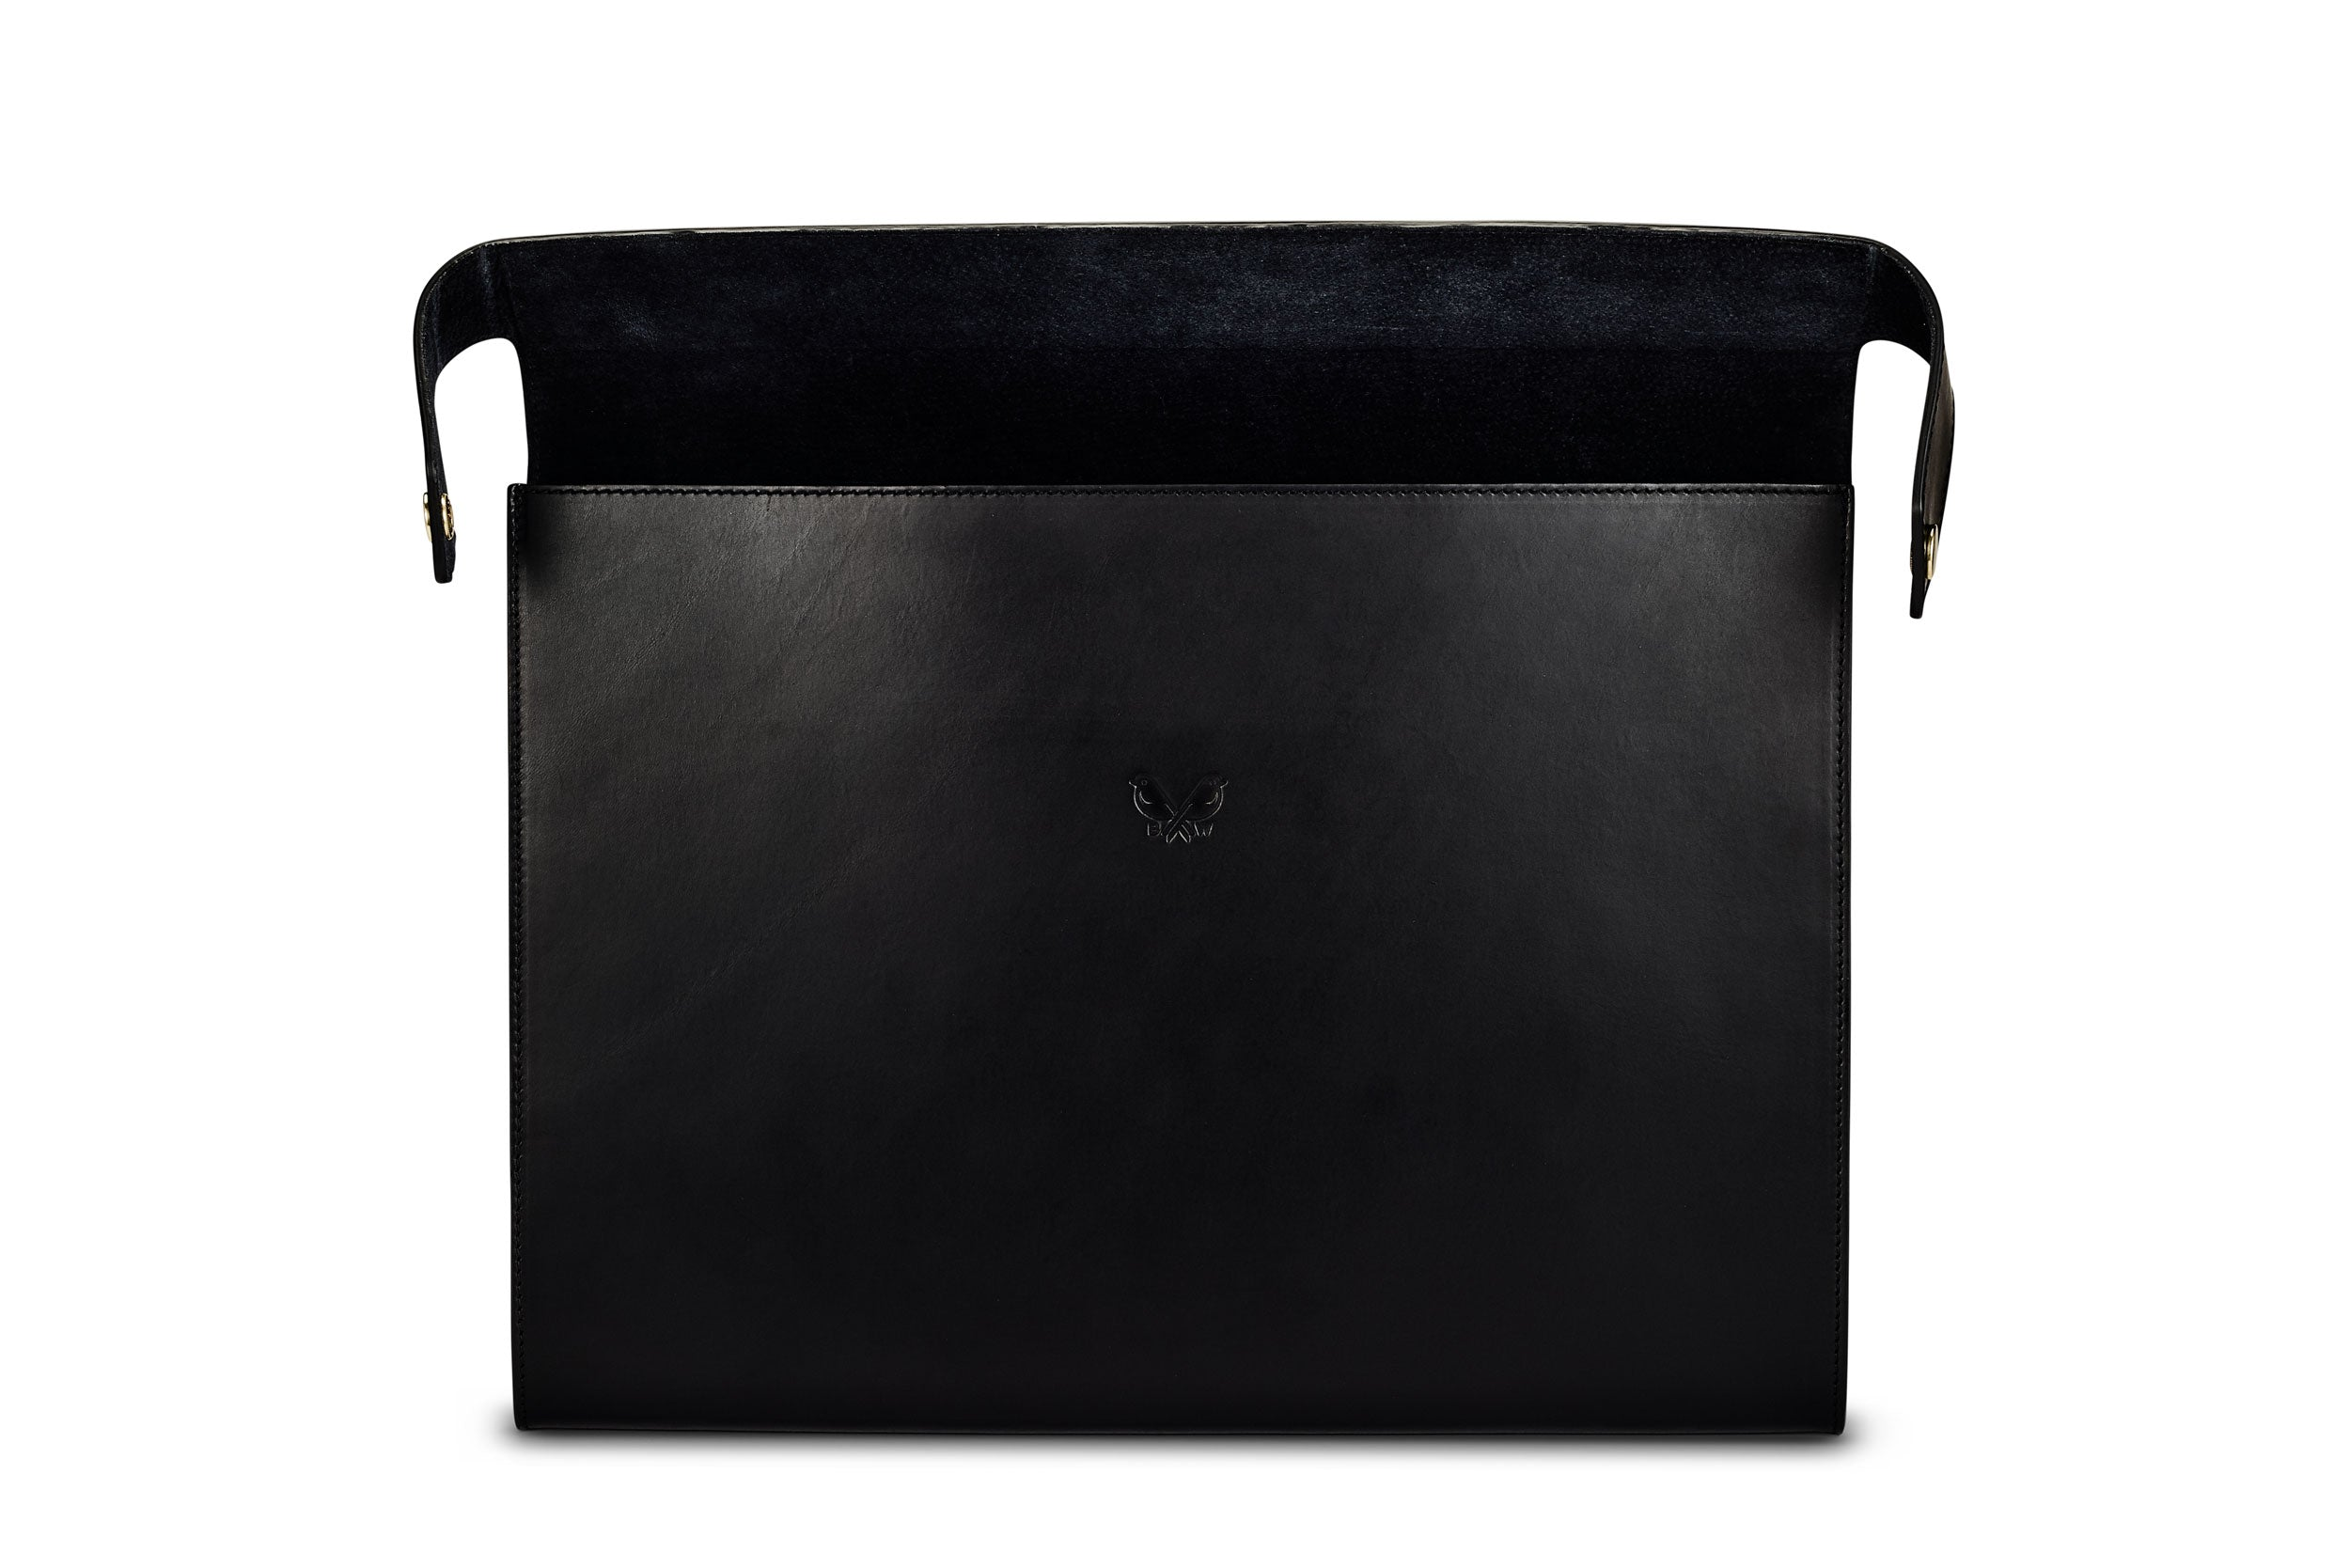 Folio - Black Leather